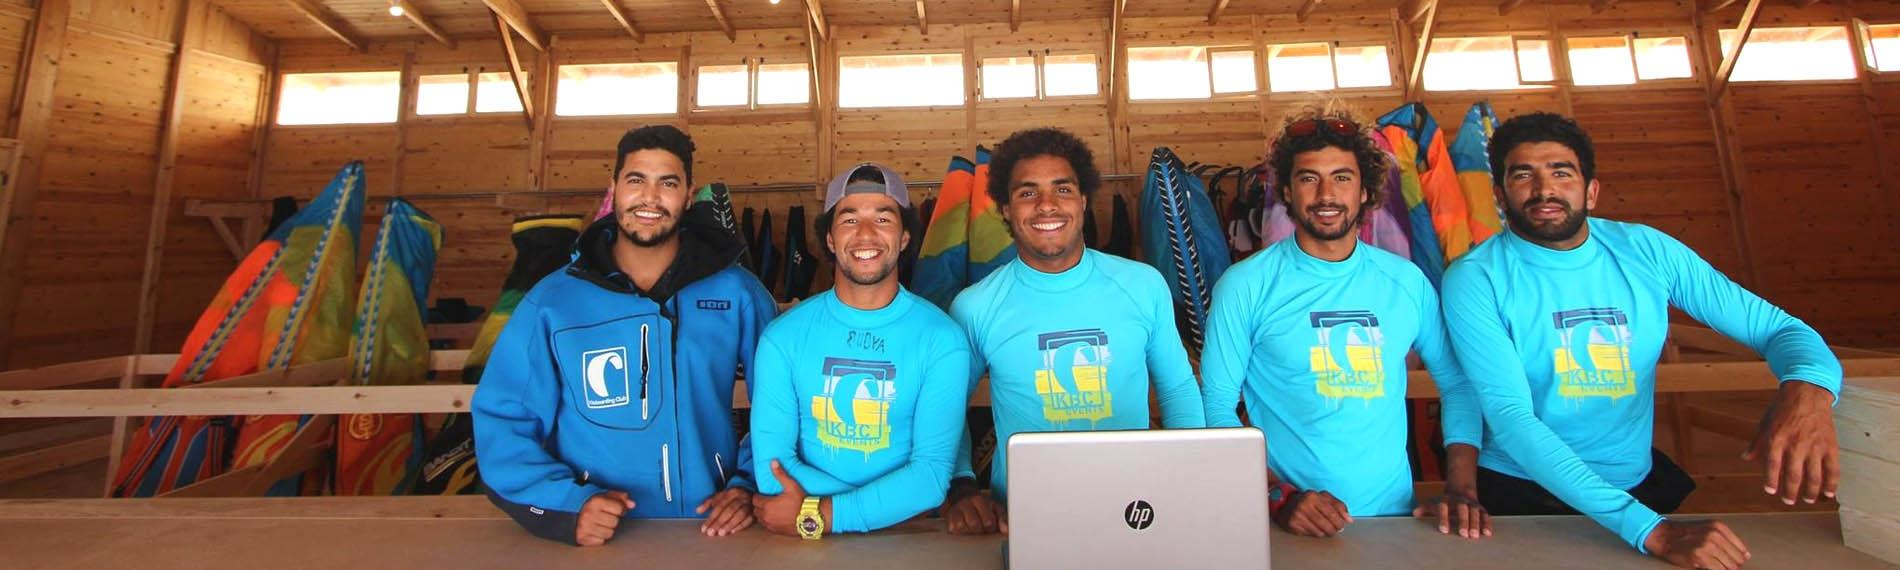 Kiteboarding Club Dakhla Team